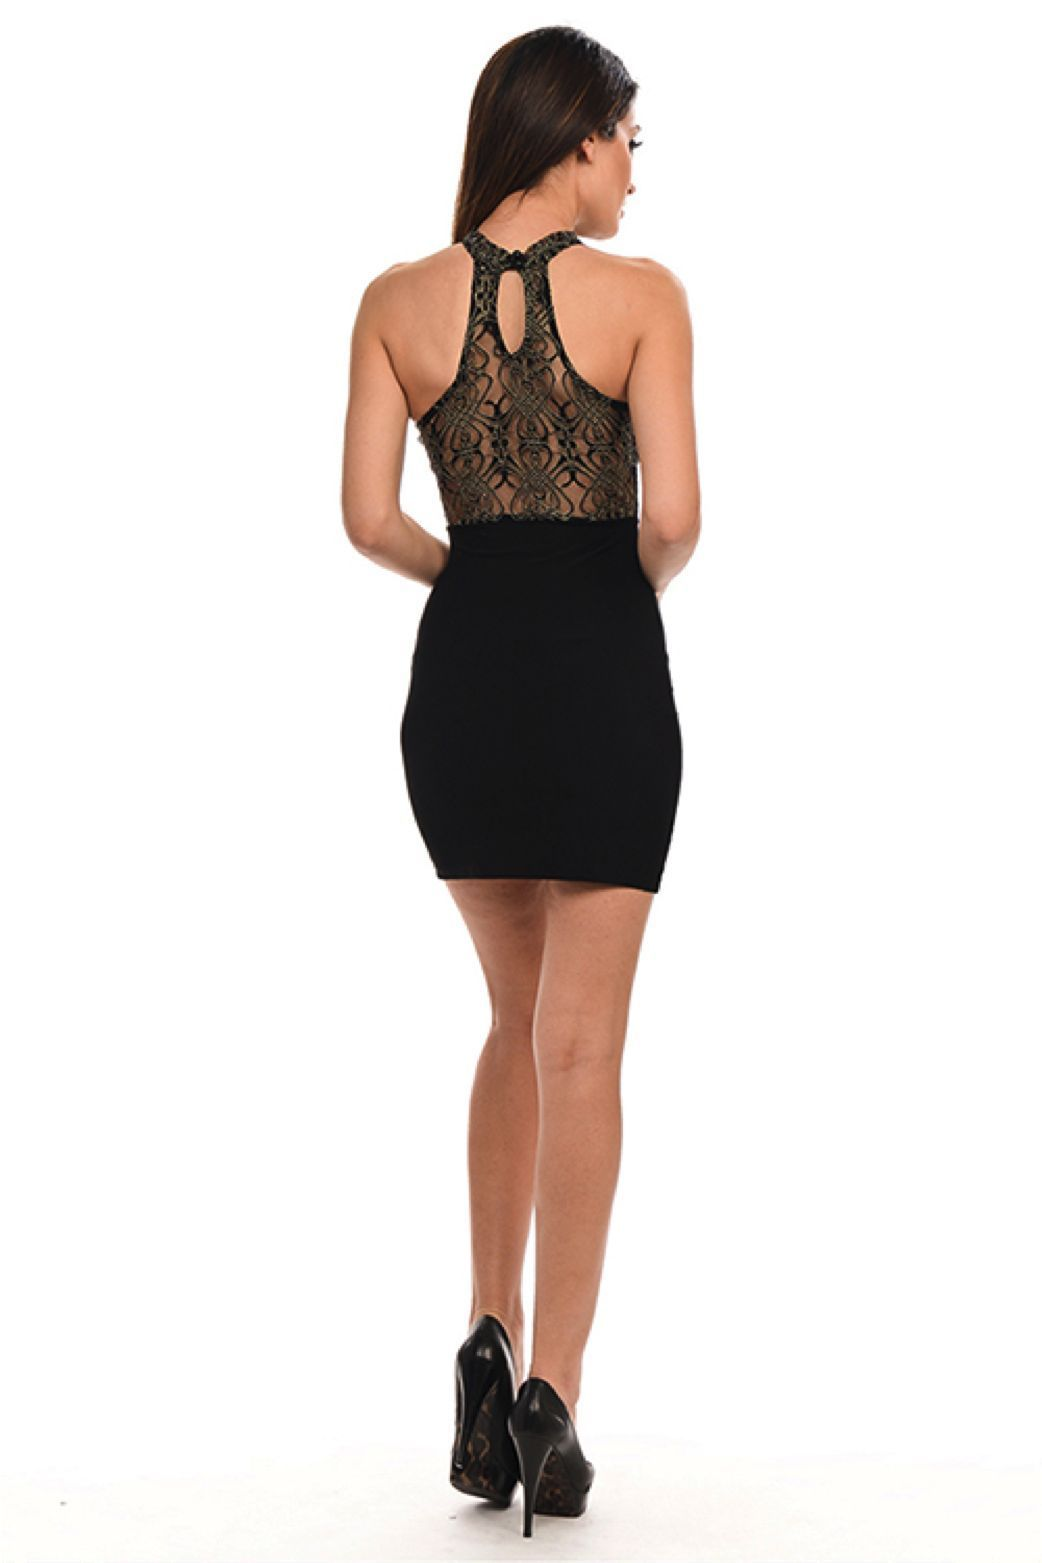 Image 1 of Sexy Black Halter Gold Mesh Lace Neck/Racer Track Back Party Mini DressLydia - L